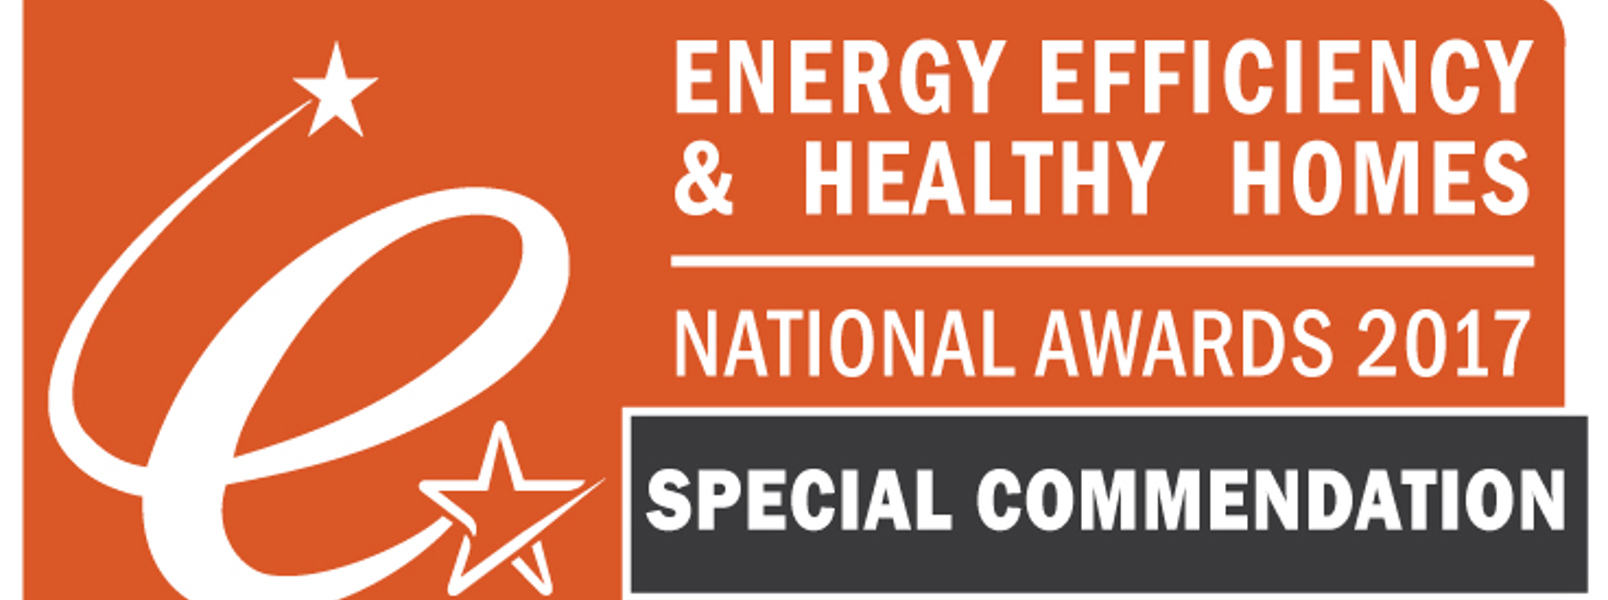 Success at National Energy Efficiency & Healthy Homes Awards